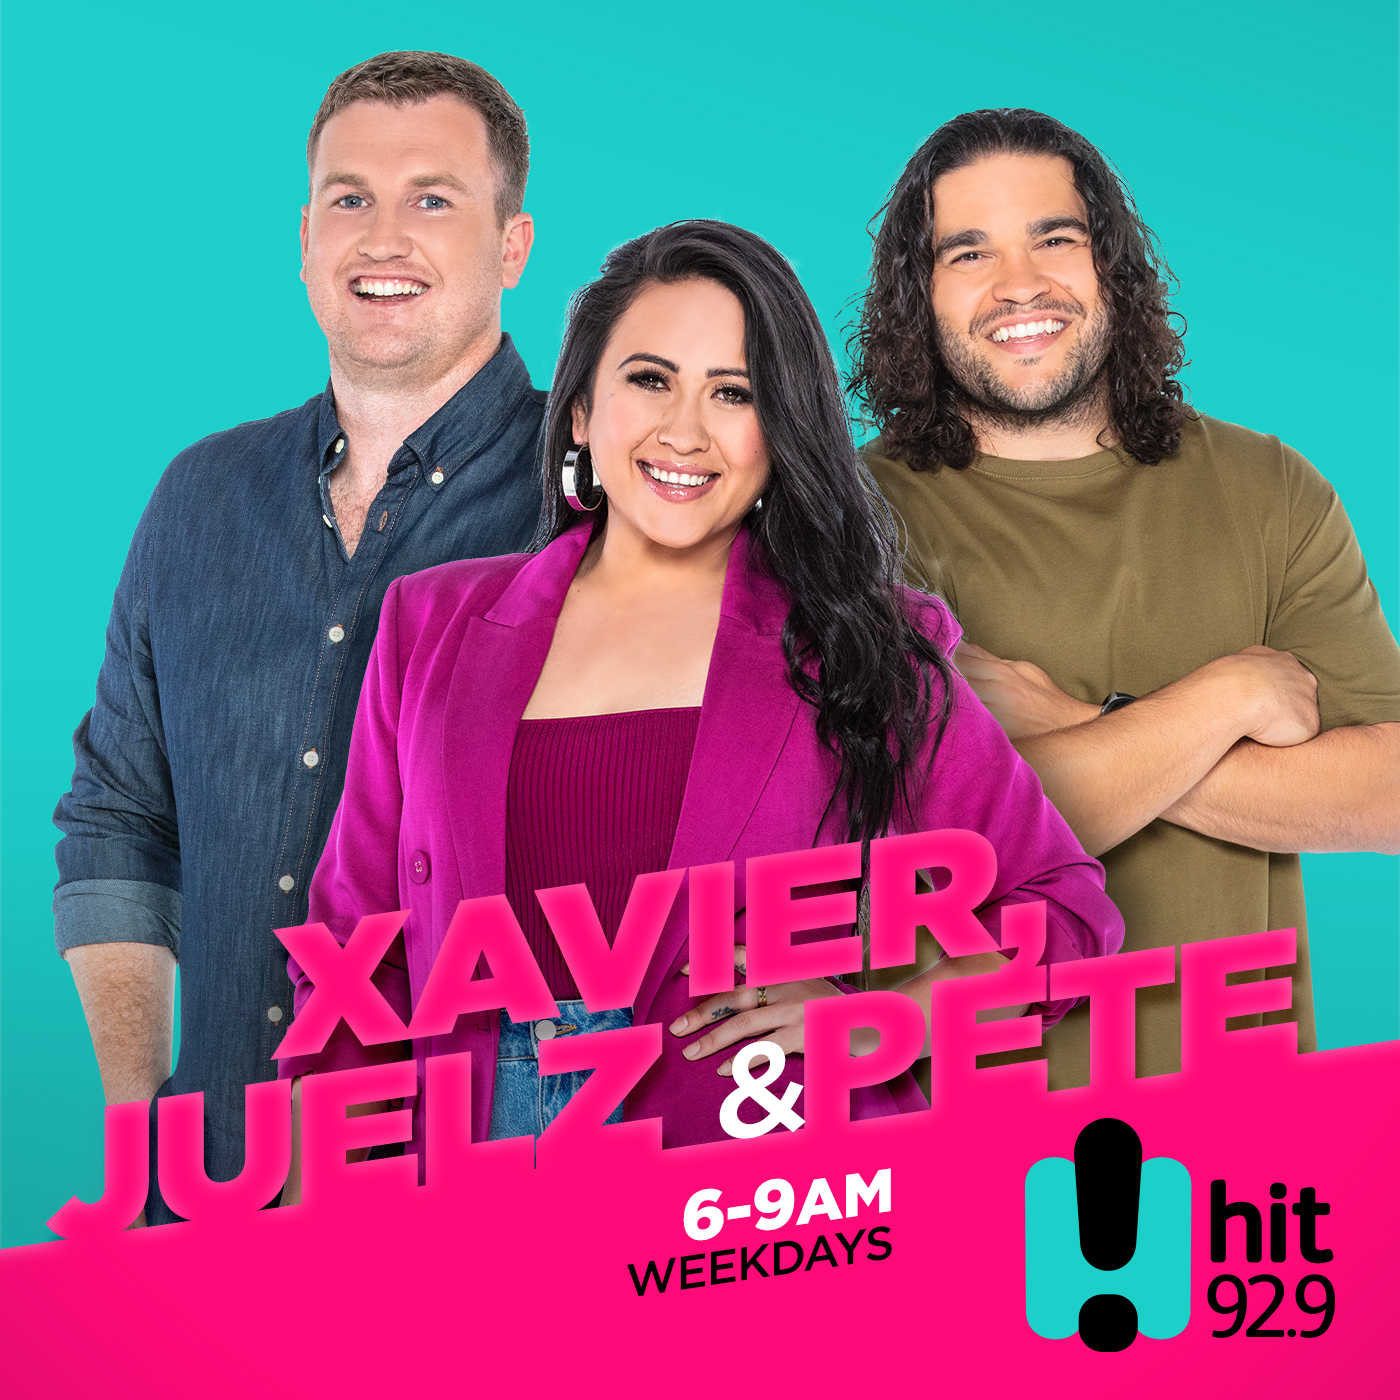 Heidi, Xavier & Ryan Catch Up - hit92.9 Perth